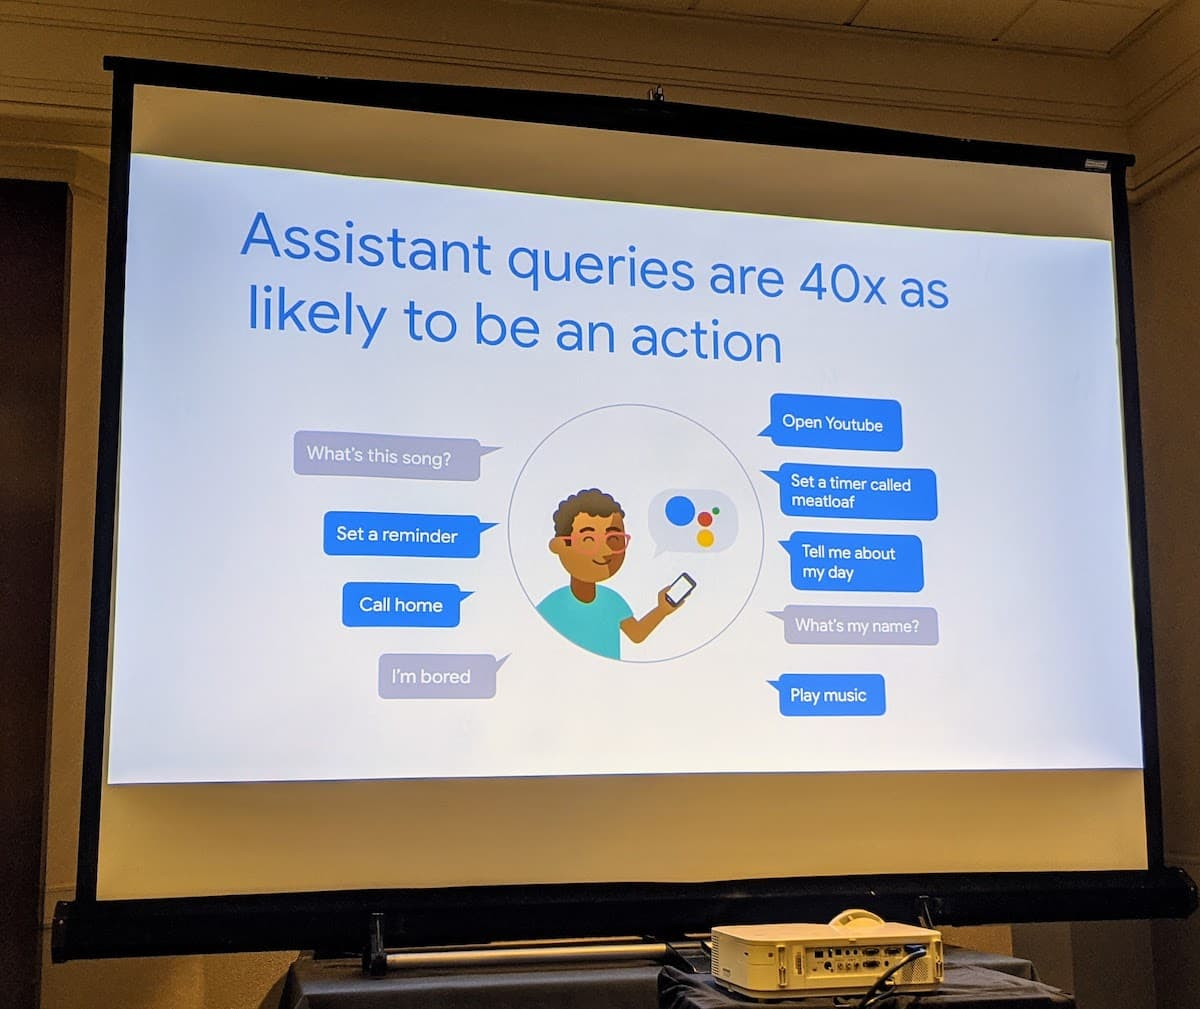 Assistant queries are 200x more conversational than Search.